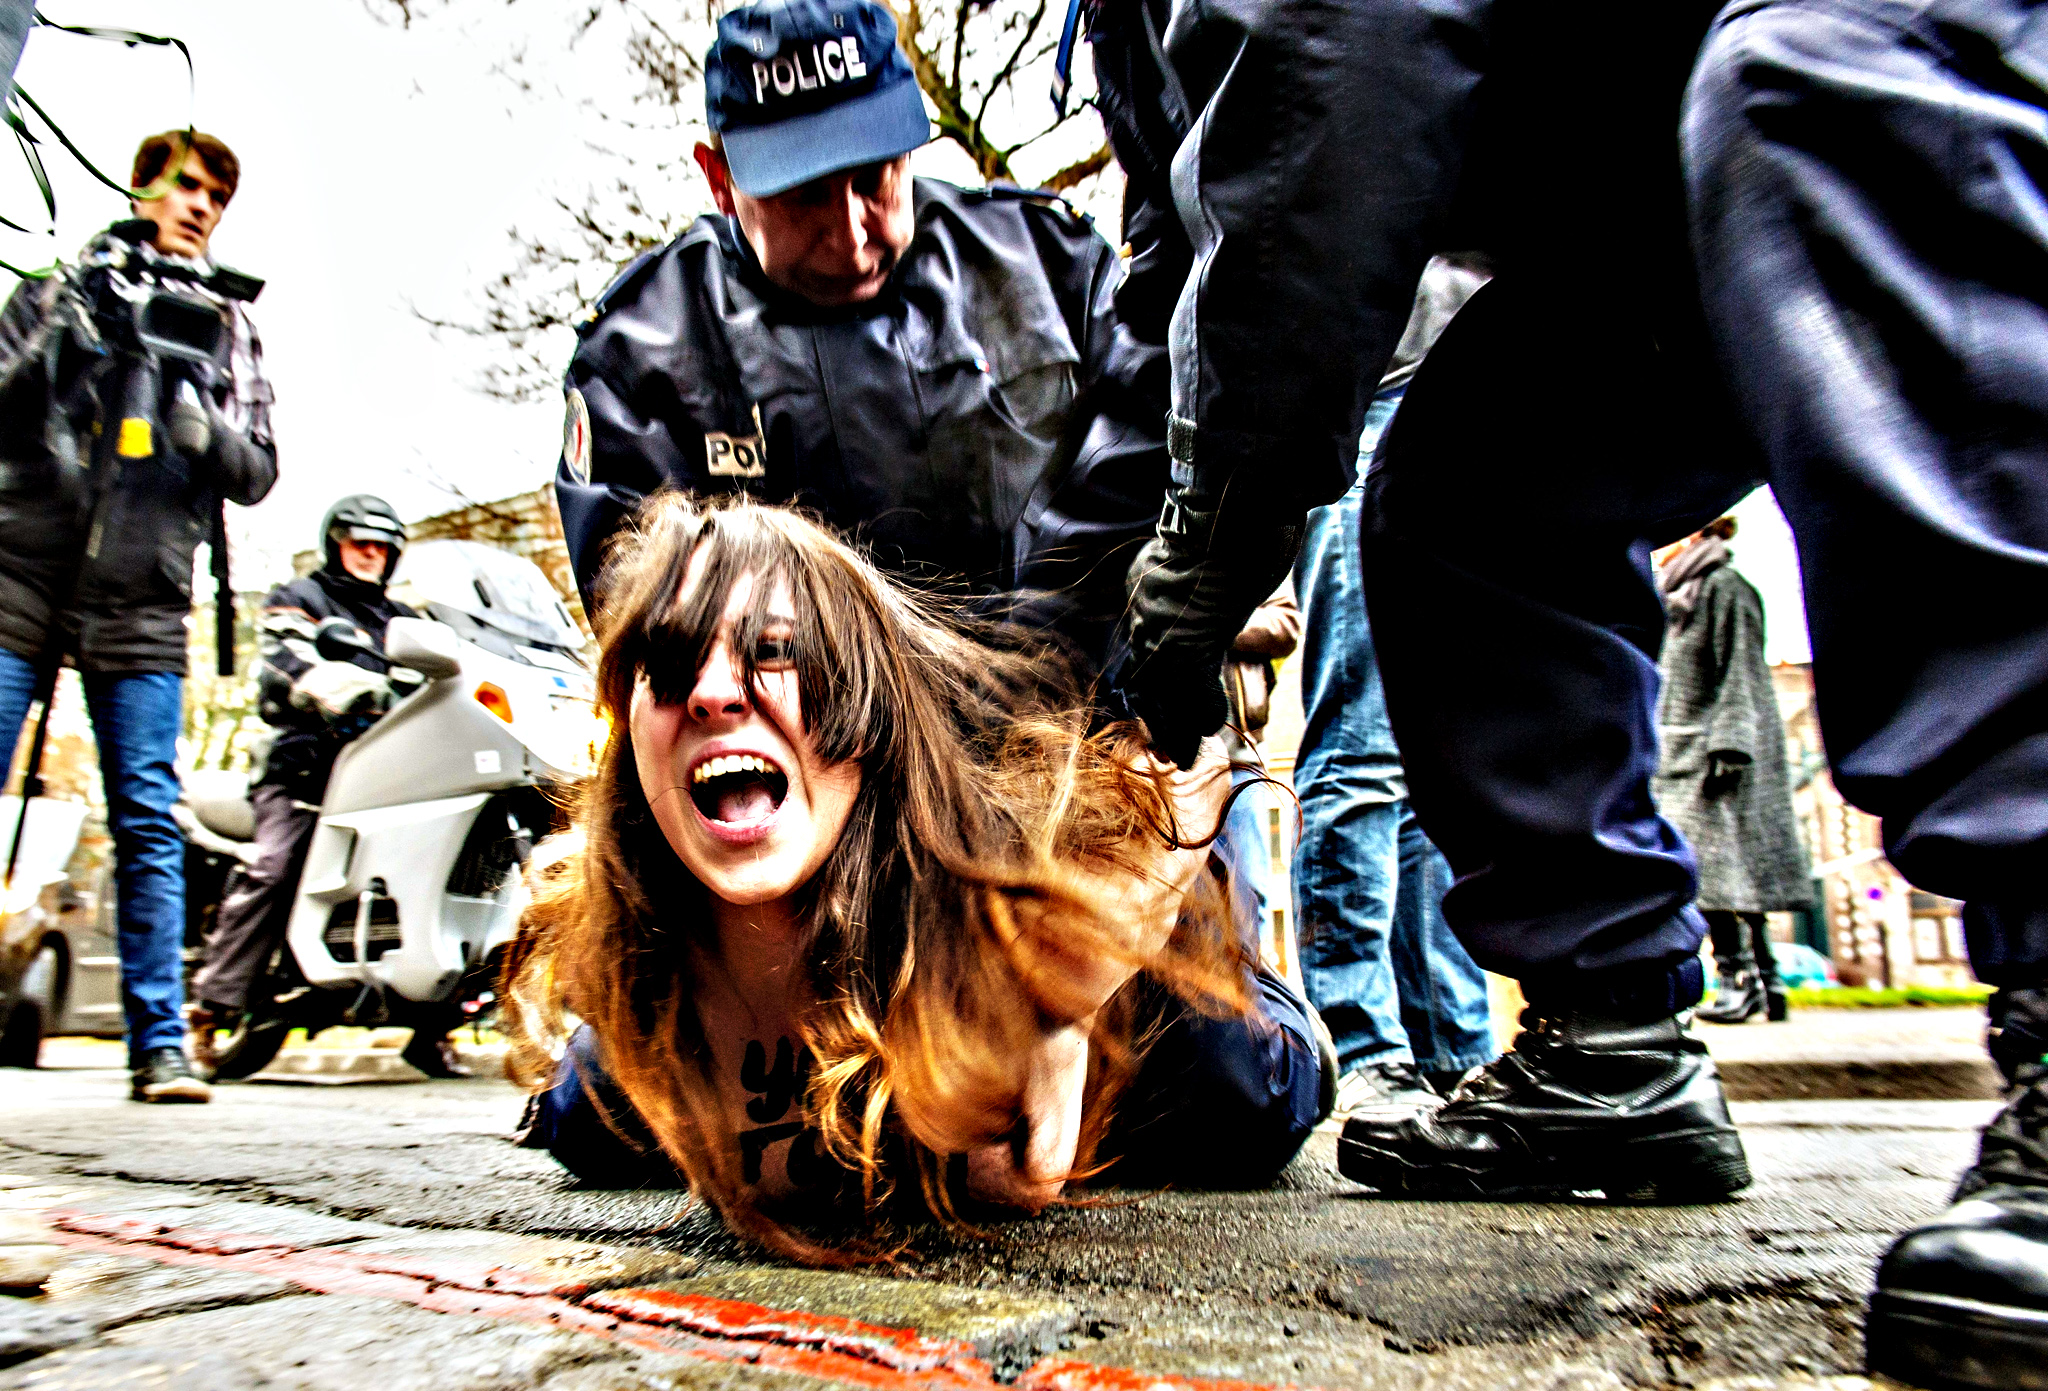 """Policemen detain a topless Femen activist after she jumped in front of the car carrying former IMF chief Dominique Strauss-Kahn (not seen) upon his arrival for his trial in Lille, northern France, on February 10, 2015. Three topless women from the protest group Femen jumped on the car of Dominique Strauss-Kahn as the former IMF chief arrived to testify at his trial for """"aggravated pimping."""" With slogans scrawled on their half-naked bodies and hurling insults at the car, the three protesters were quickly rounded up by police as the car entered an underground parking area."""